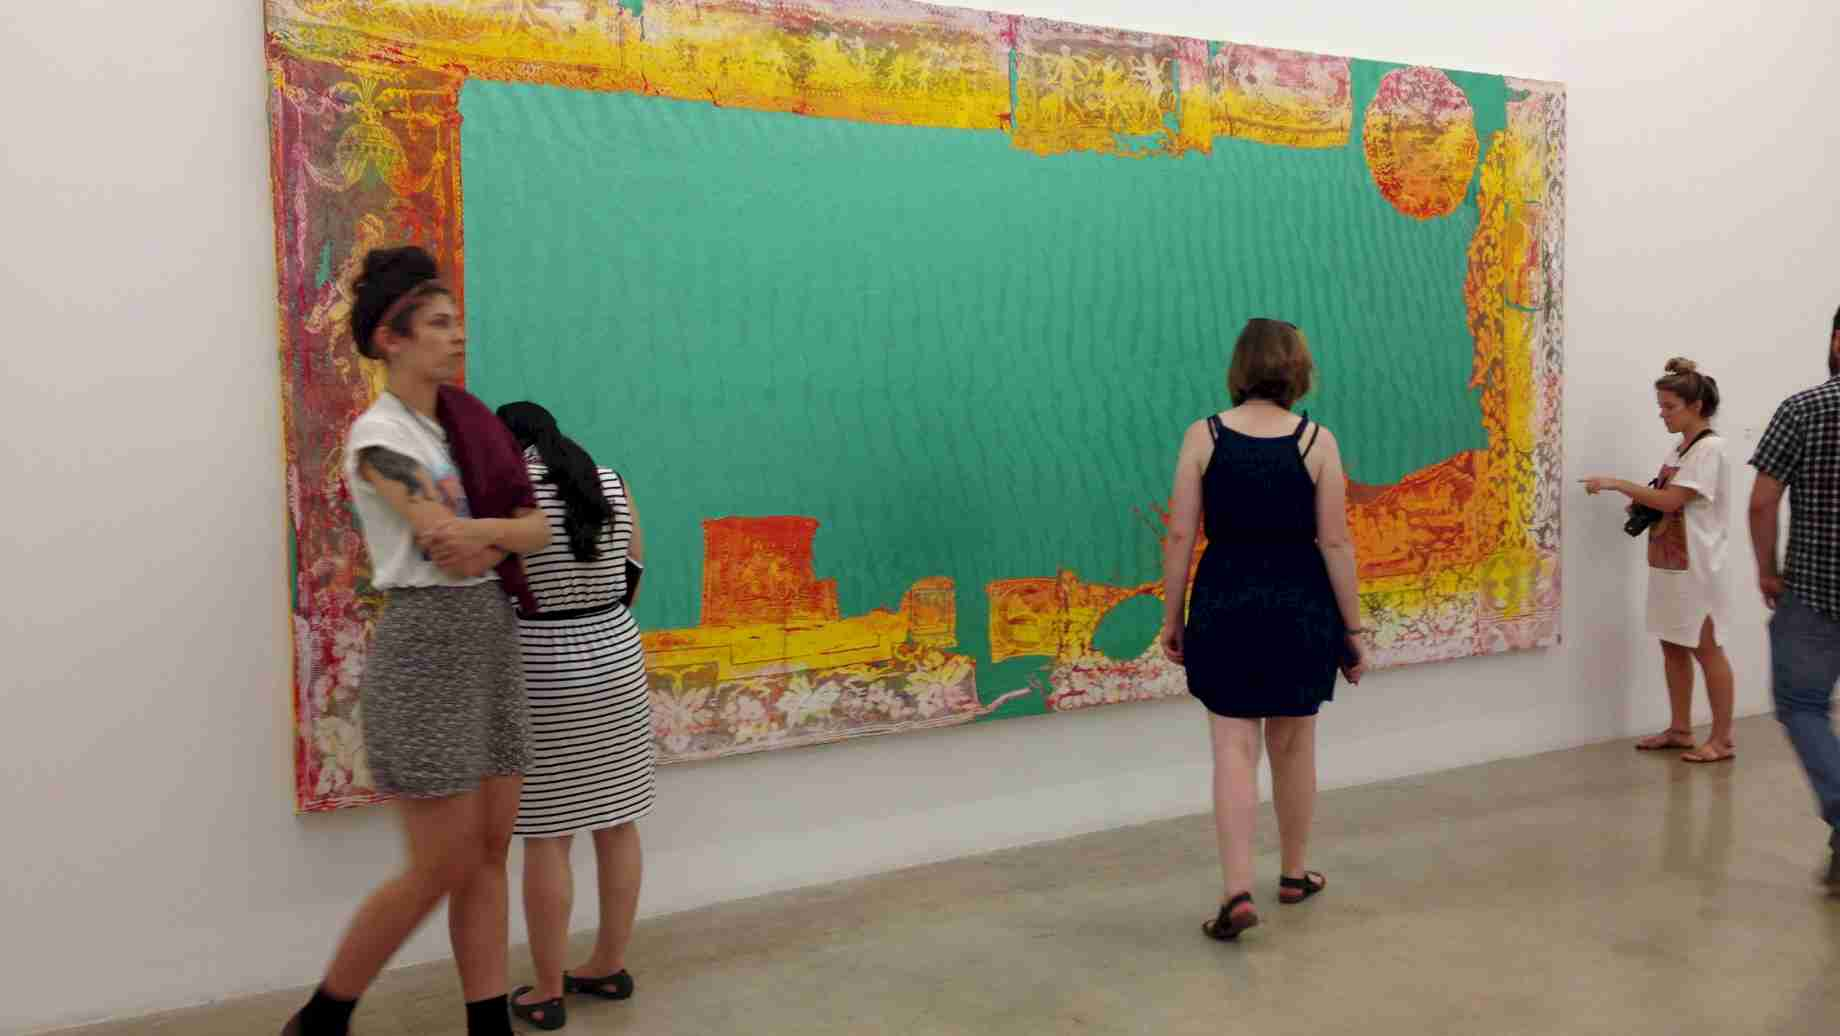 Field trip to Miami galleries and museums